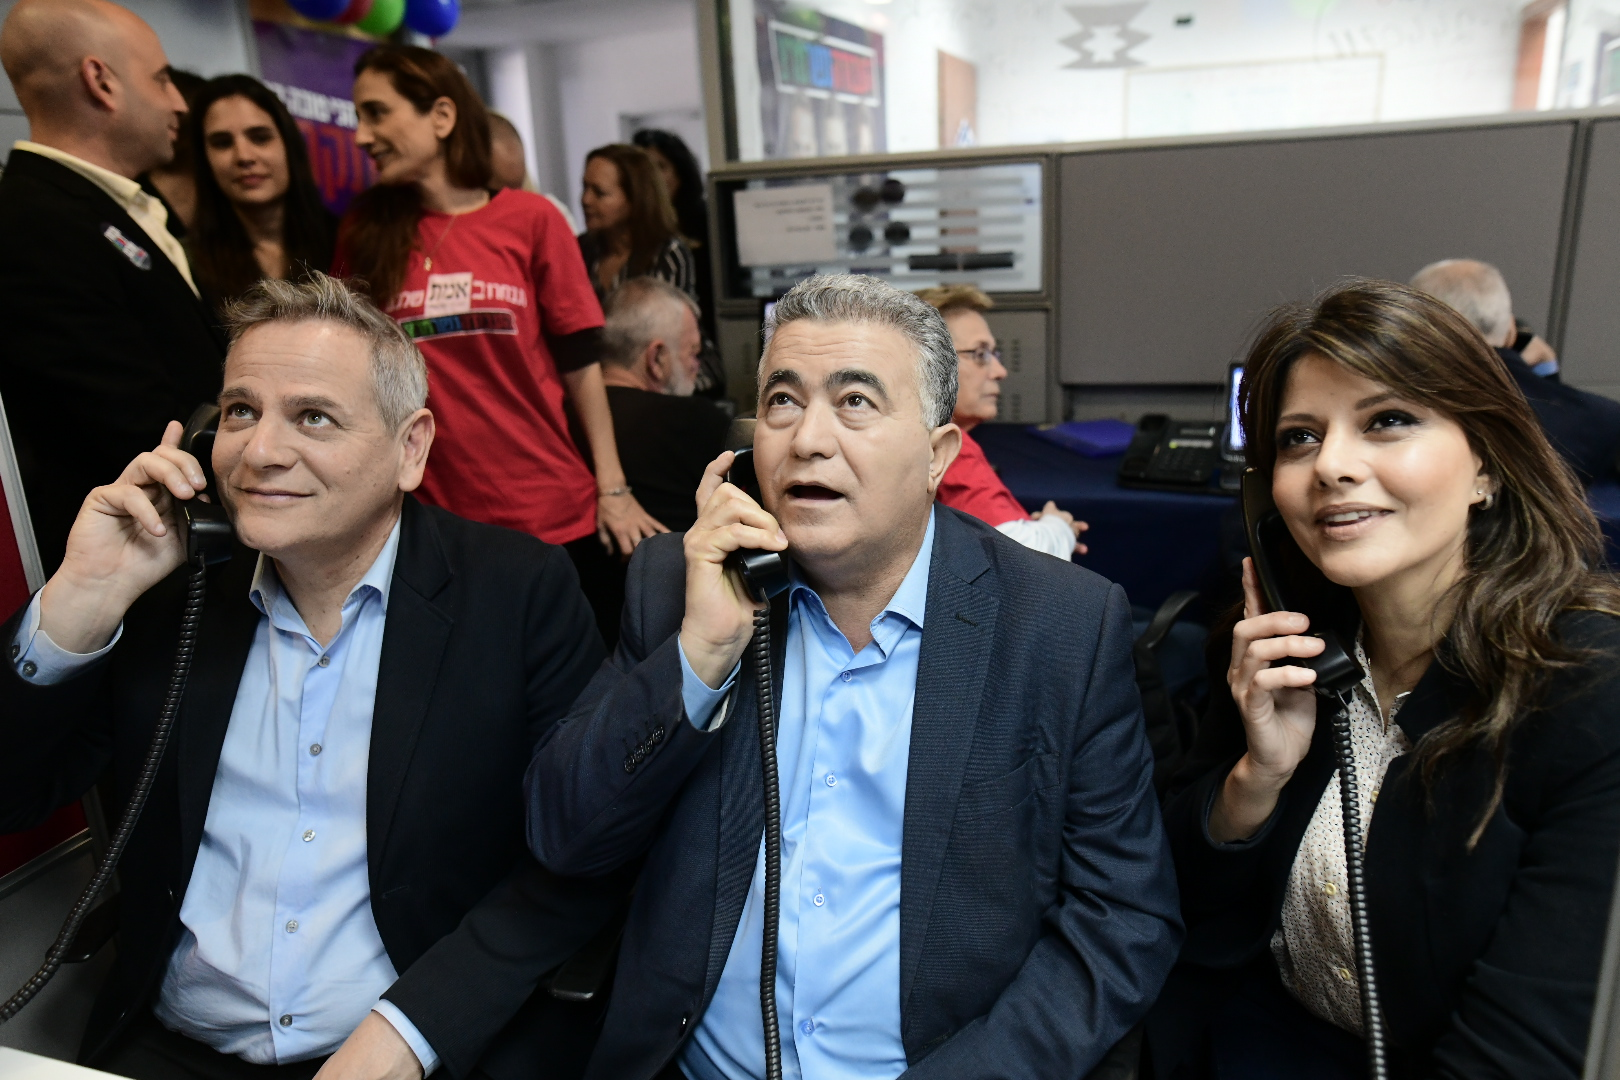 The heads of the Labor-Gesher-Meretz party, Nitzan Horowitz, Amir Peretz, and Orly Levy, make calls to convince citizens to vote for them at their election headquarter in Tel Aviv on March 01, 2020. (Tomer Neuberg/Flash90)